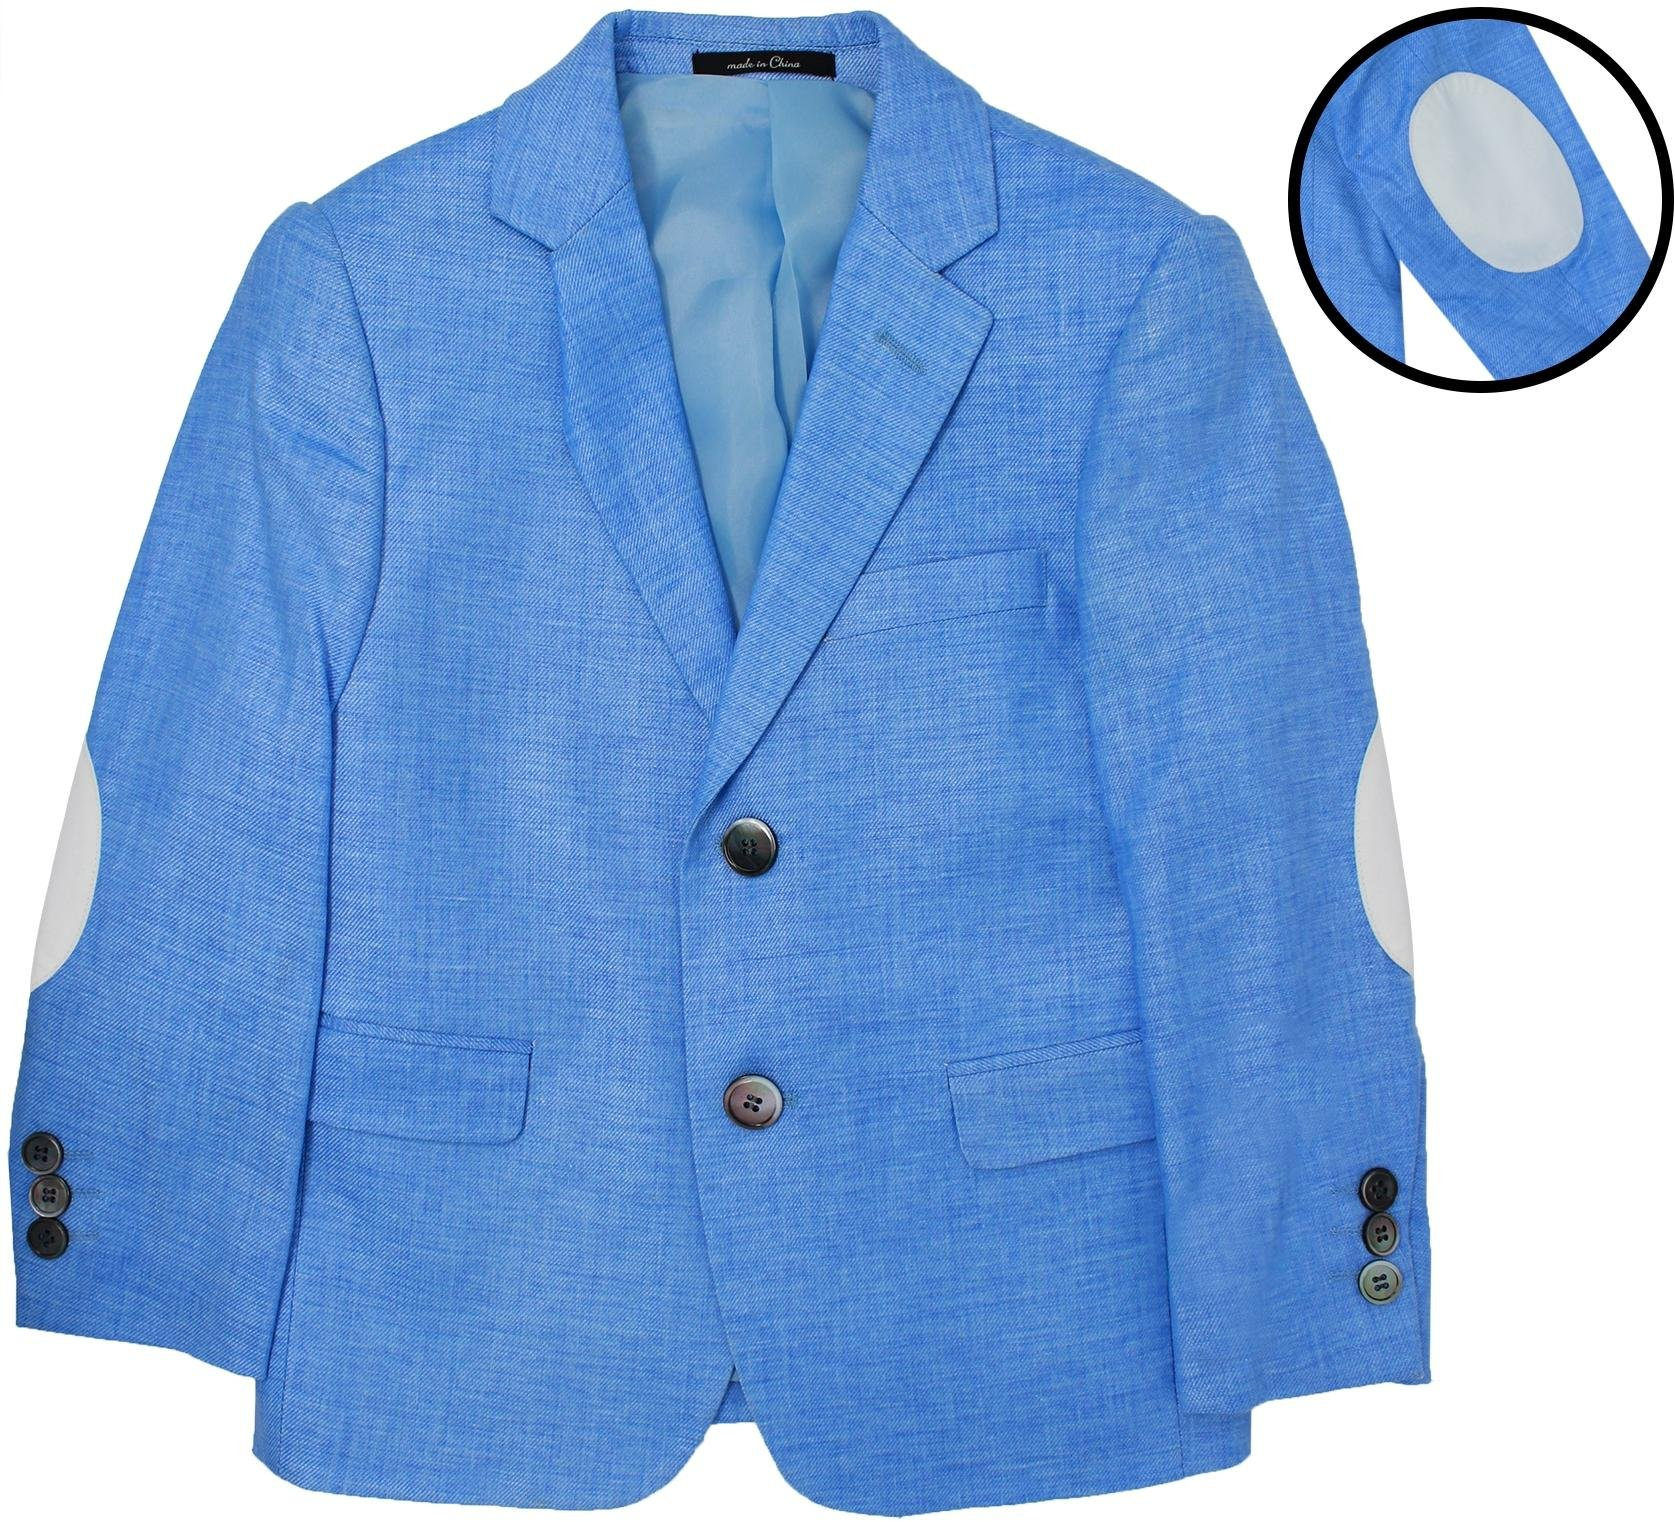 T.O. Collection Boys Blue Slim Fit Blazer With Elbow Patches - 6020-4 - Blue, 5 Slim